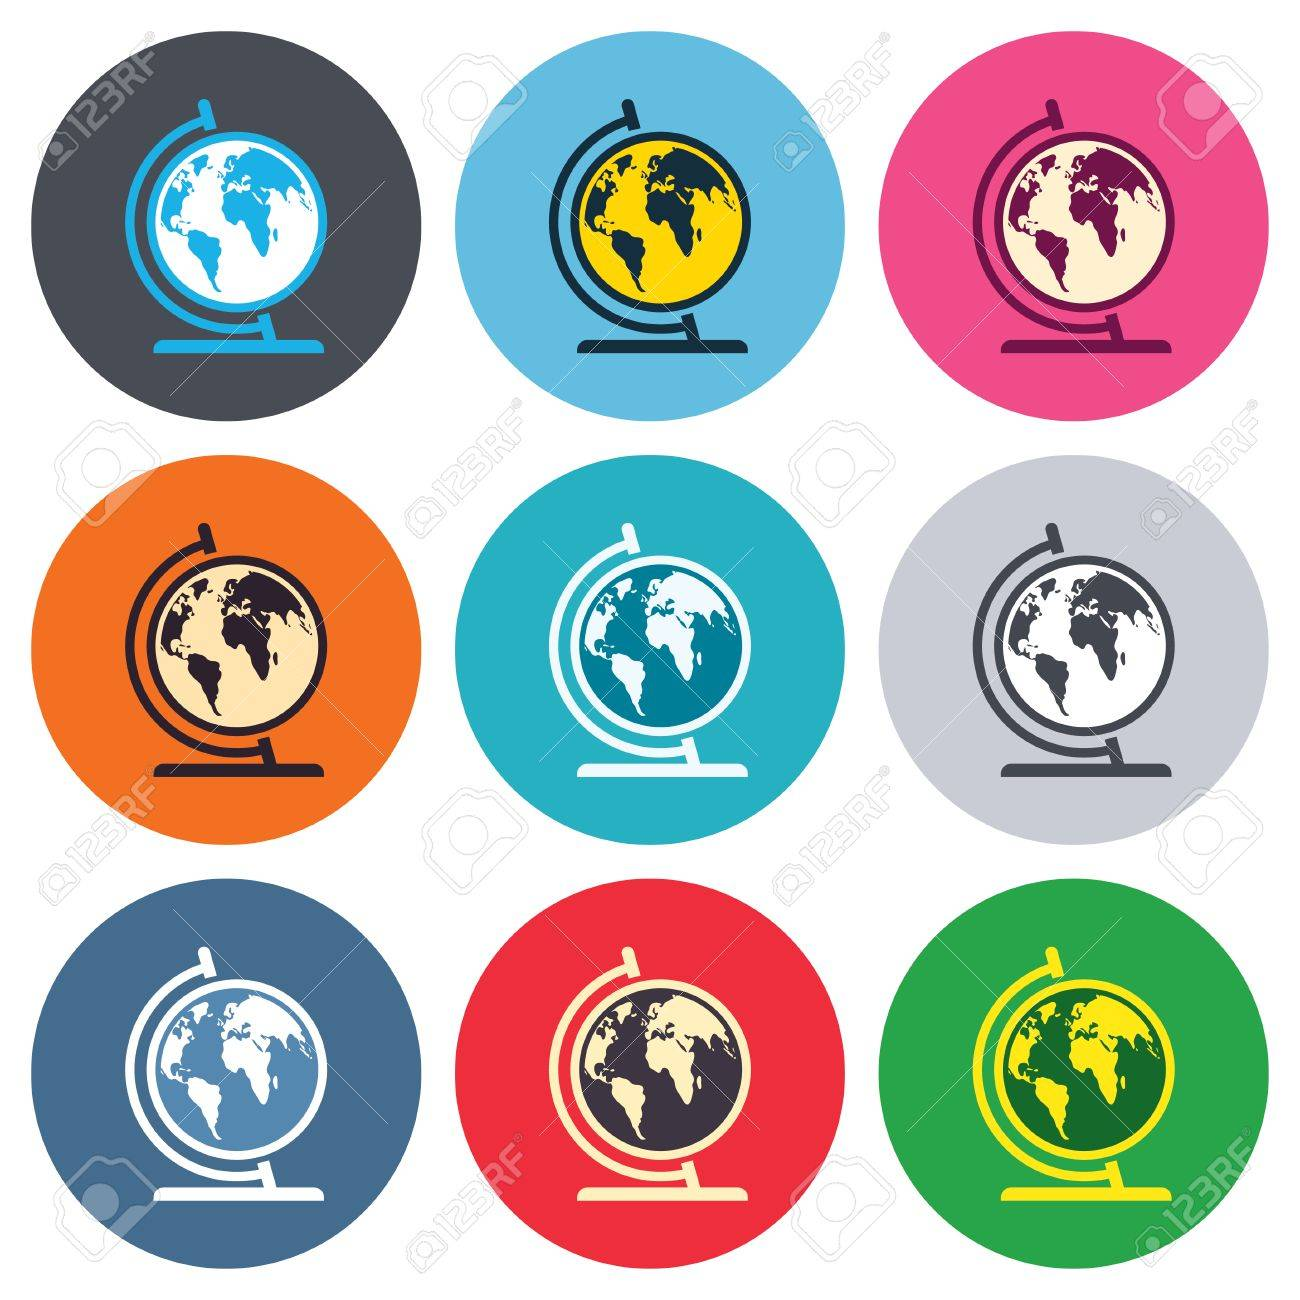 Globe sign icon world map geography symbol globe on stand for world map geography symbol globe on stand for studying colored gumiabroncs Choice Image